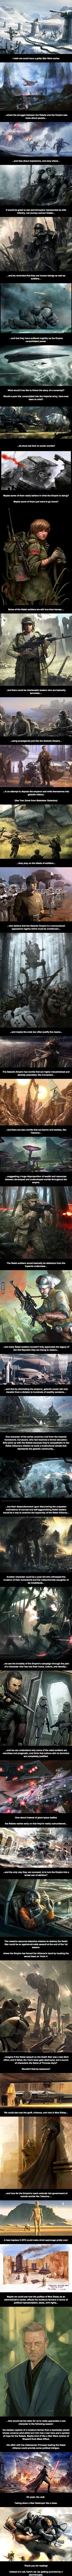 SOMEONE GIVE THIS GUY MONEY AND MAKE THIS HAPPEN! (9GAG) - Imgur